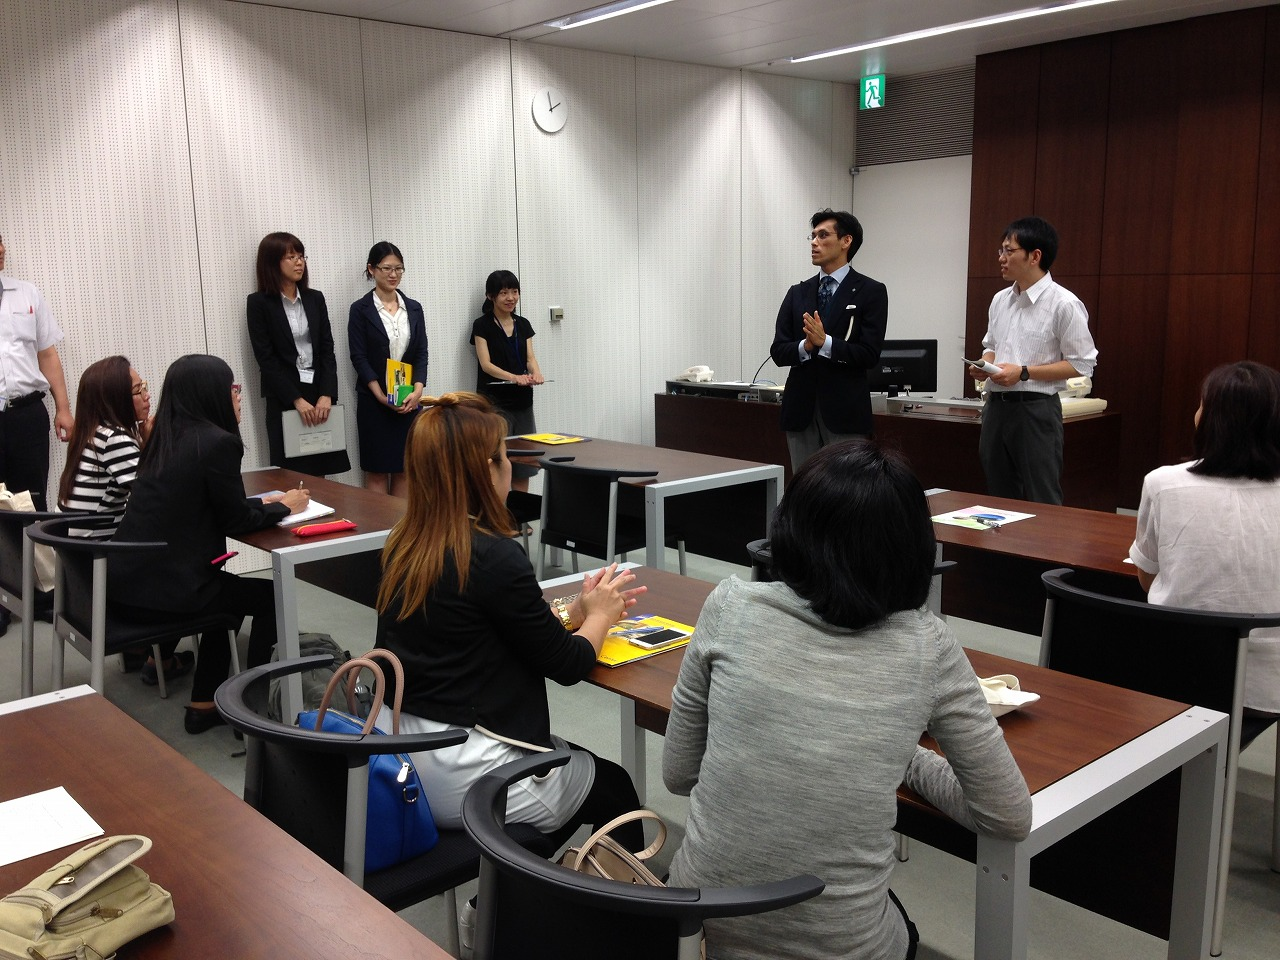 Introduction (of document arrangement?) in Kansai-kan of National Diet Library